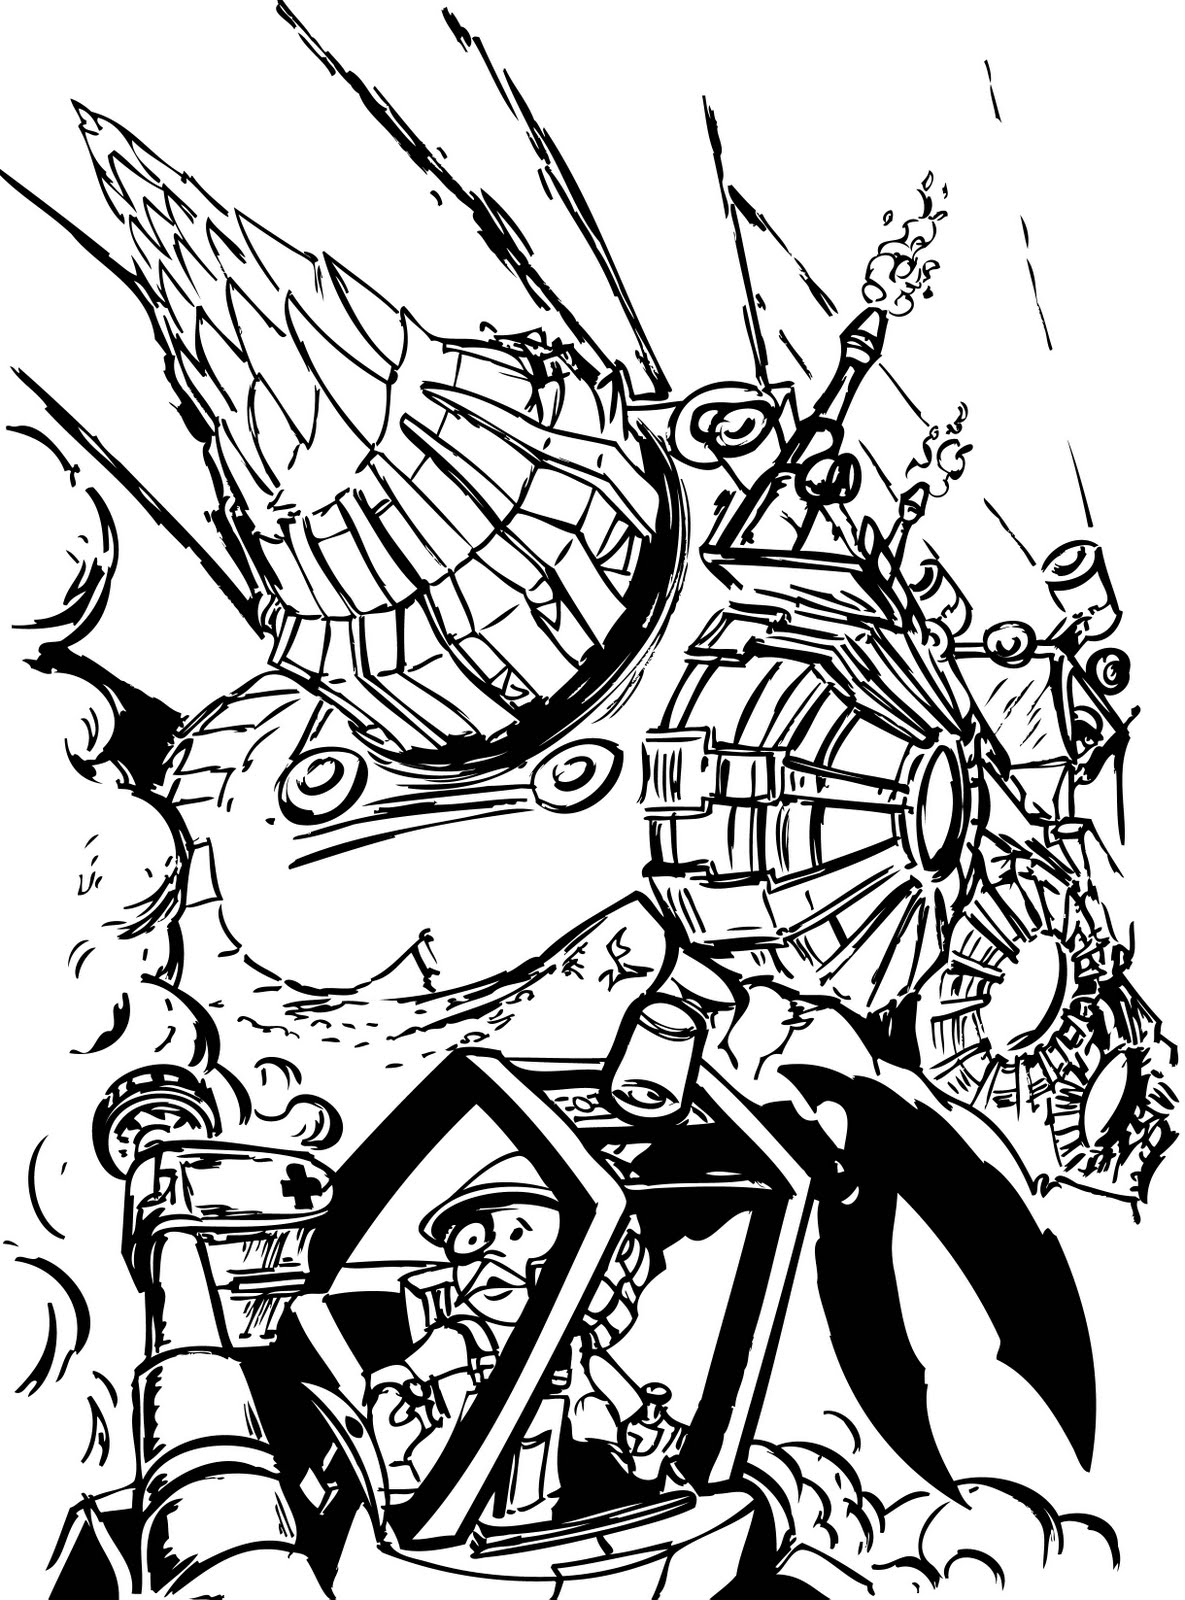 miner coloring pages - photo #42